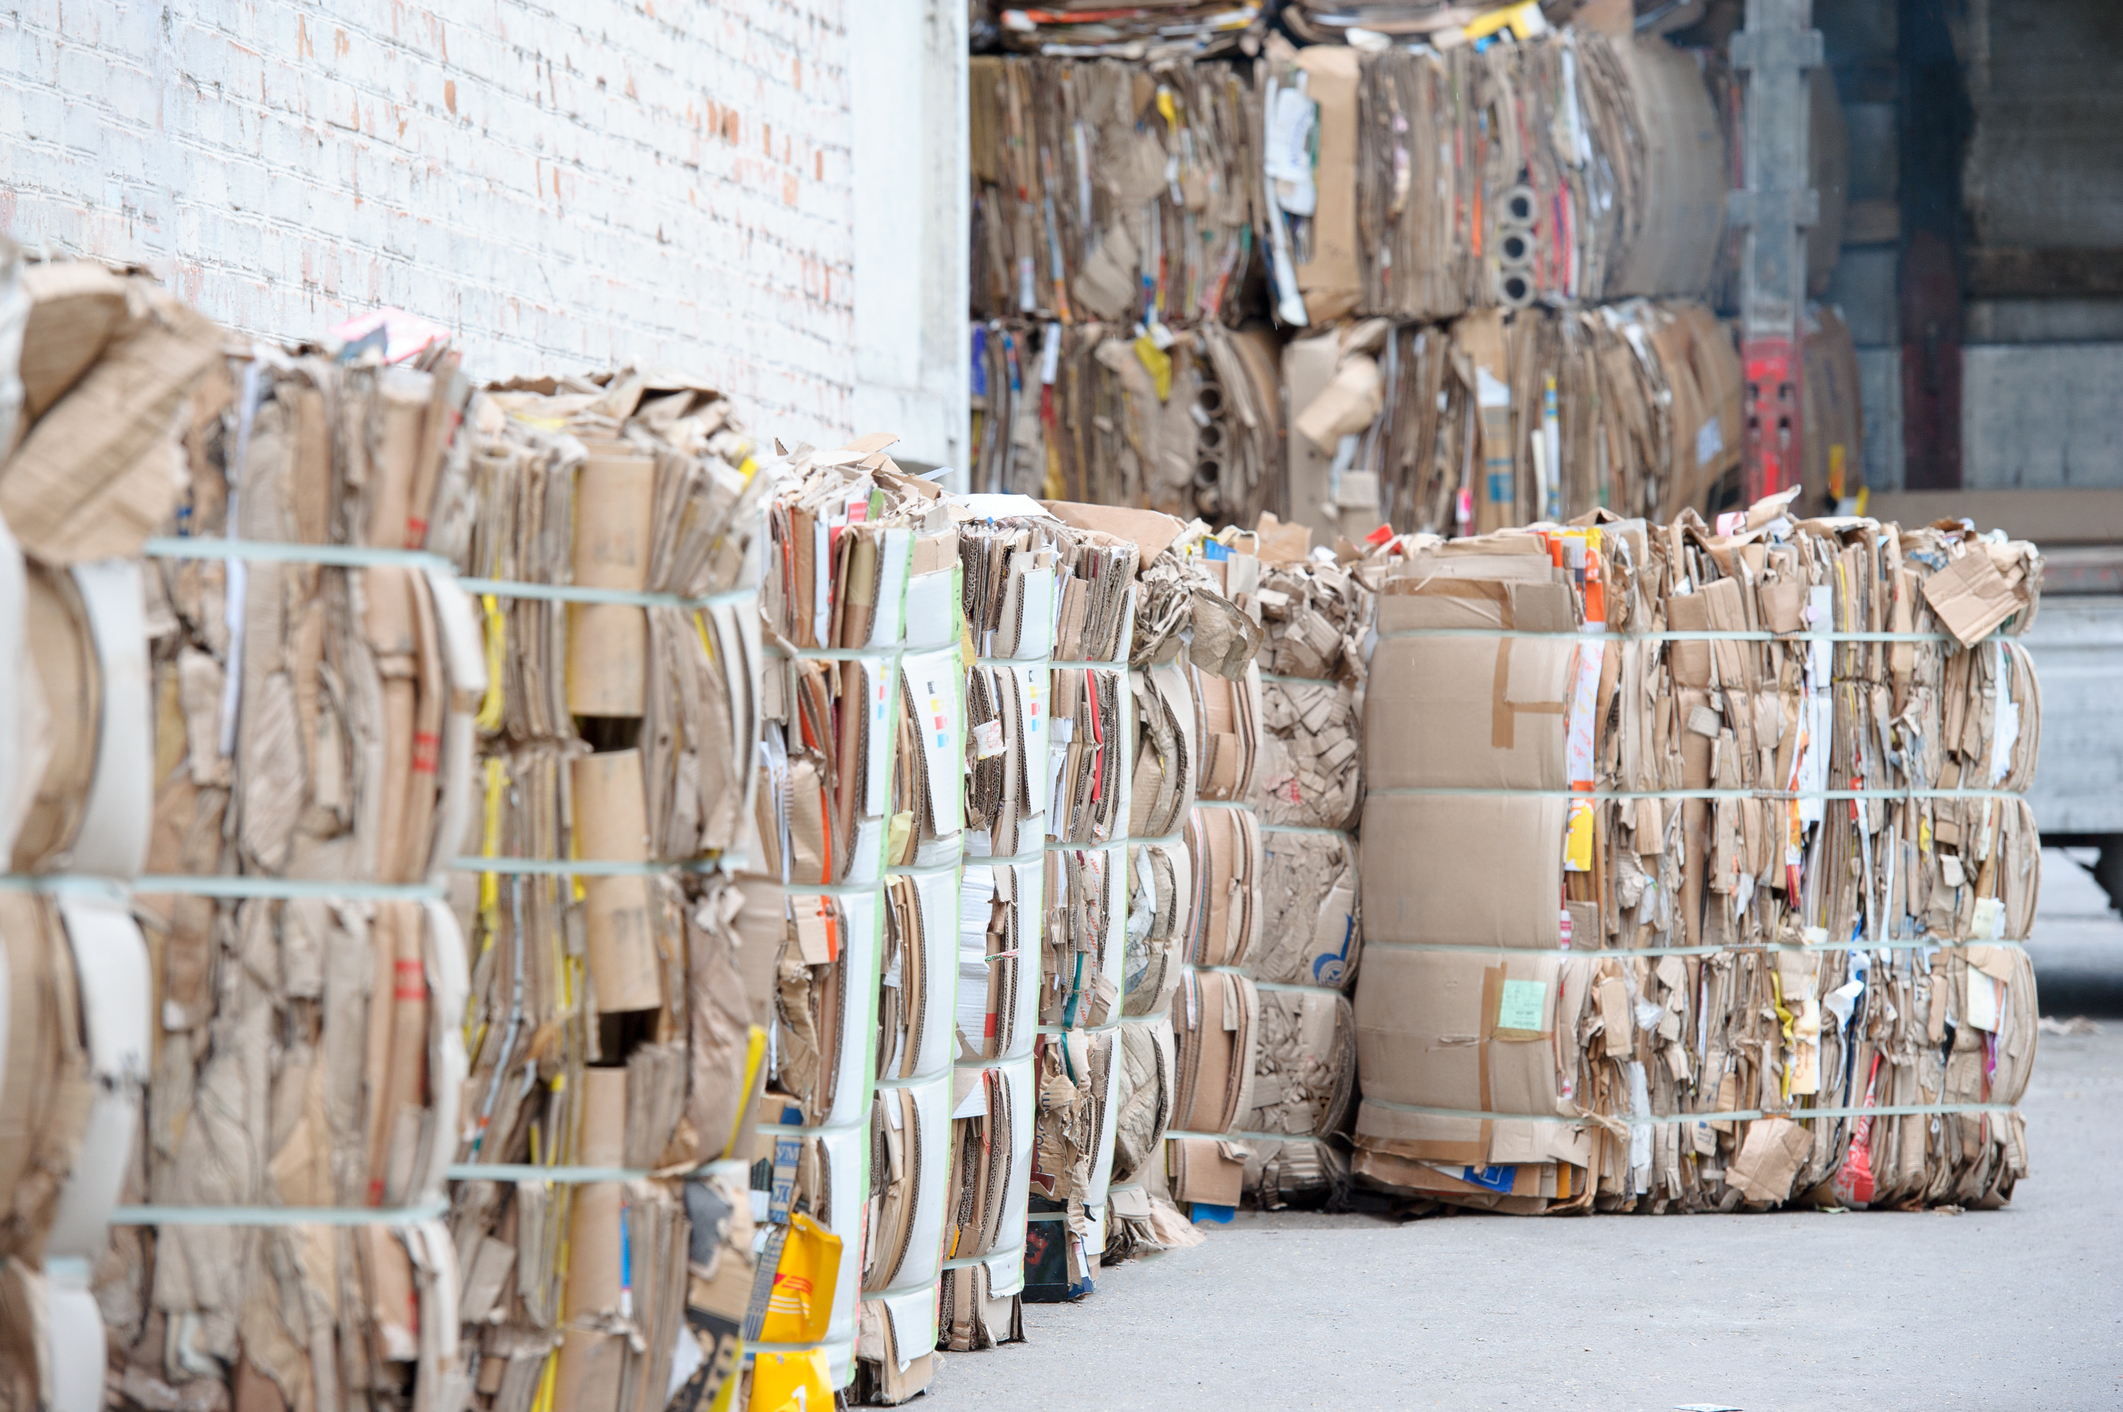 waste paper is collected and packed for recycling. Cardboard and Paper Recycling.